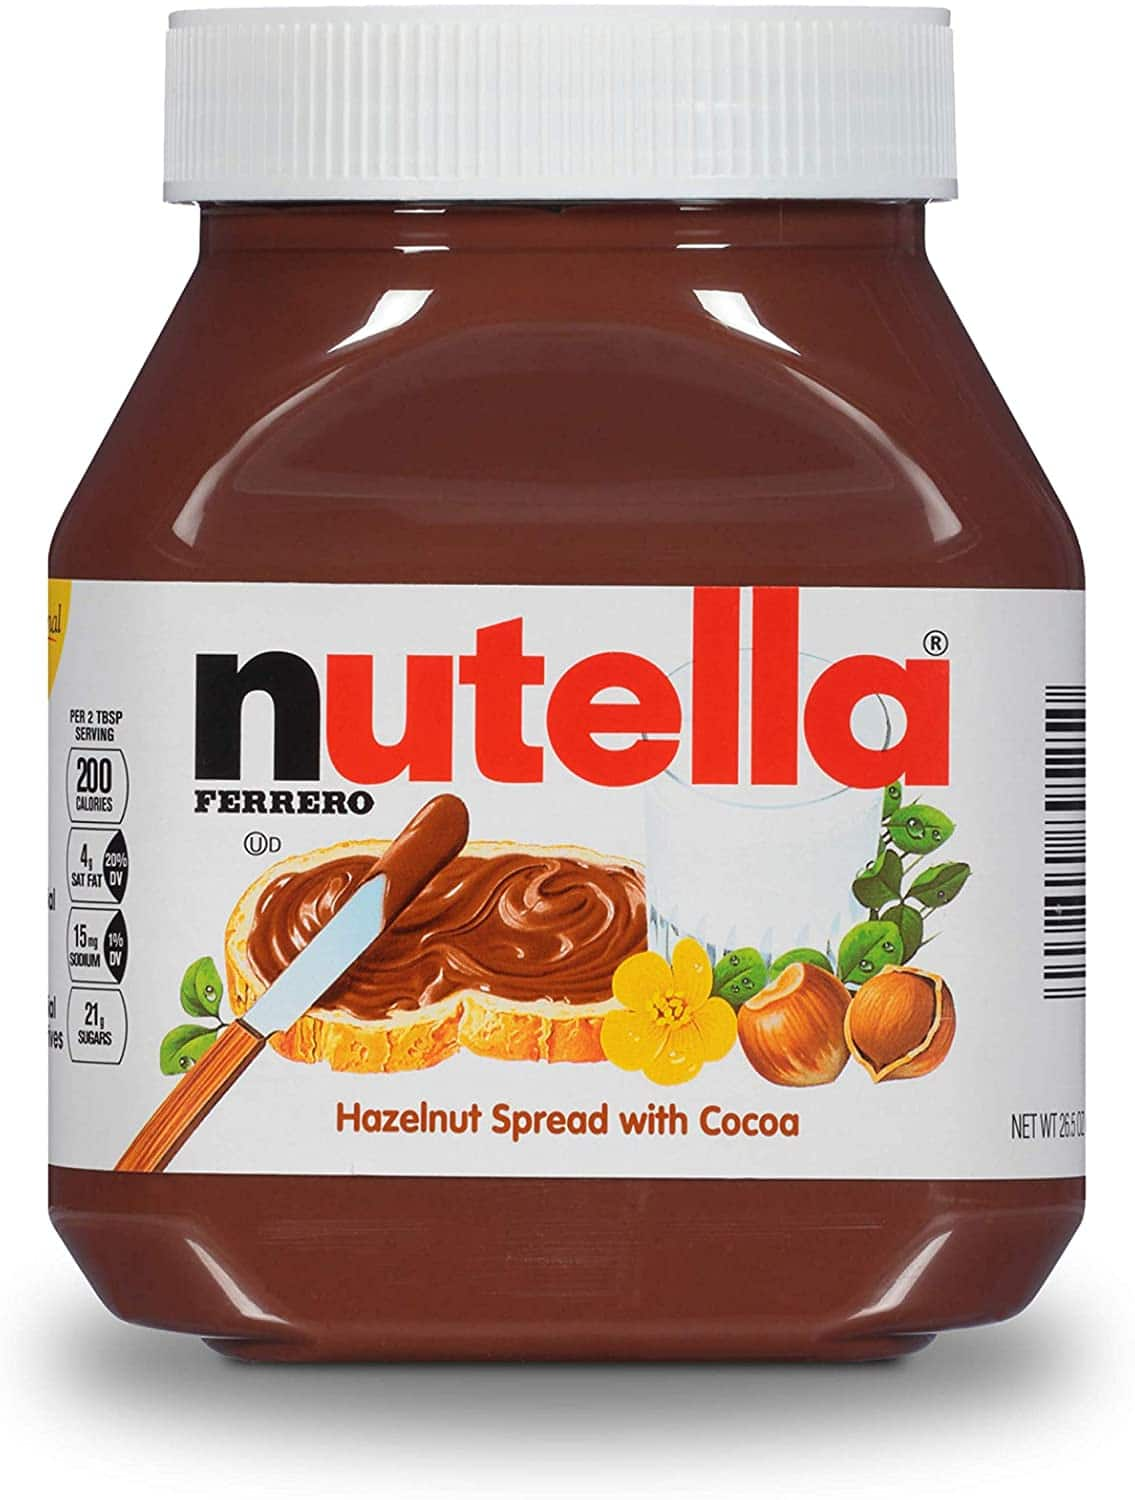 26.5-Oz Nutella Chocolate Hazelnut Spread $4.75 w/ S&S + Free S&H w/ Prime or $25+